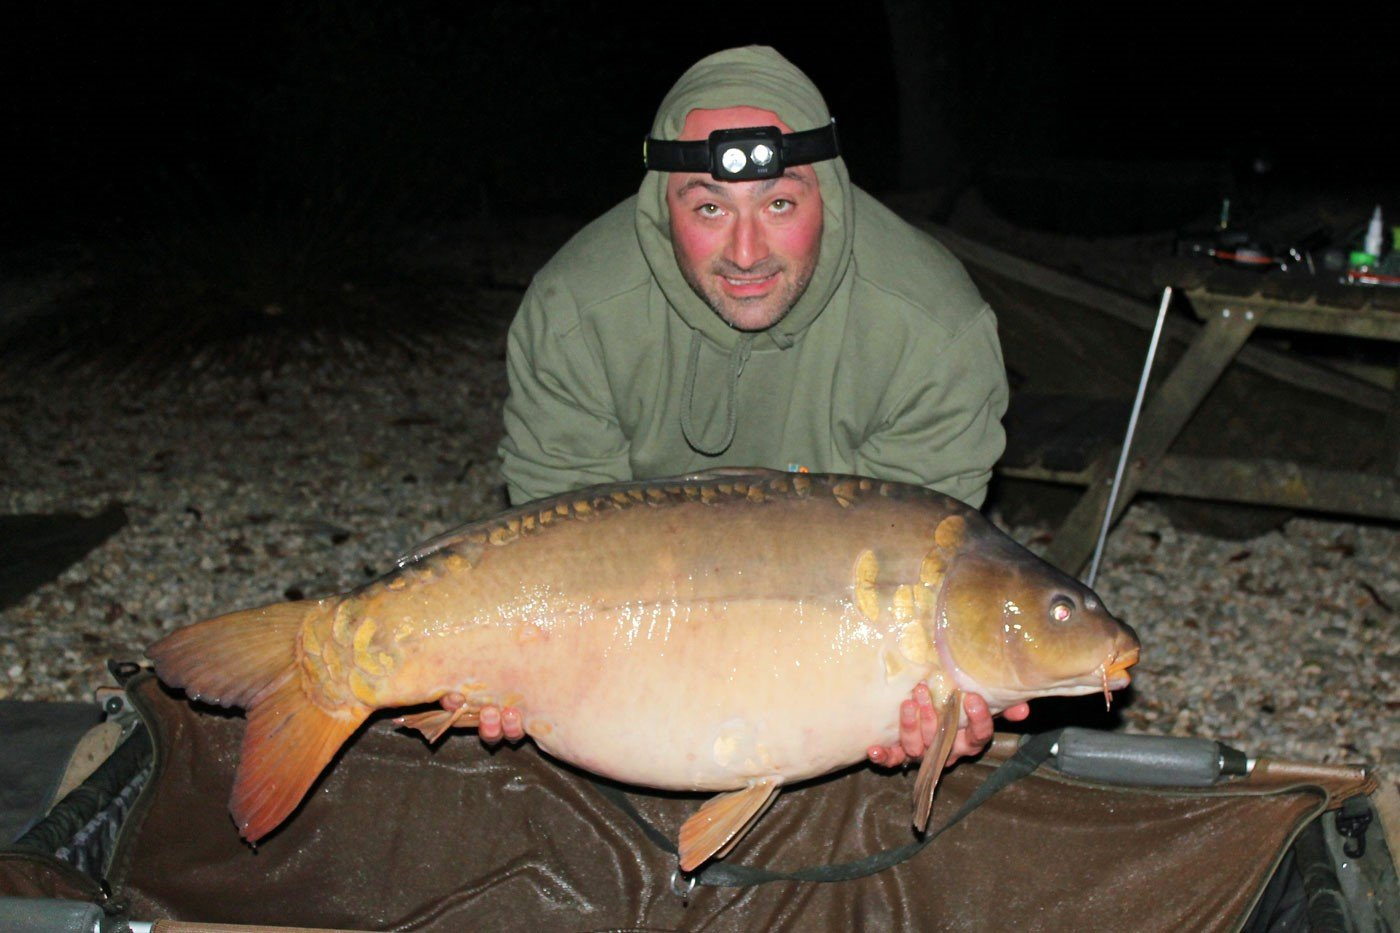 angler n france Simon with a mirror carp of 38lbs 12oz